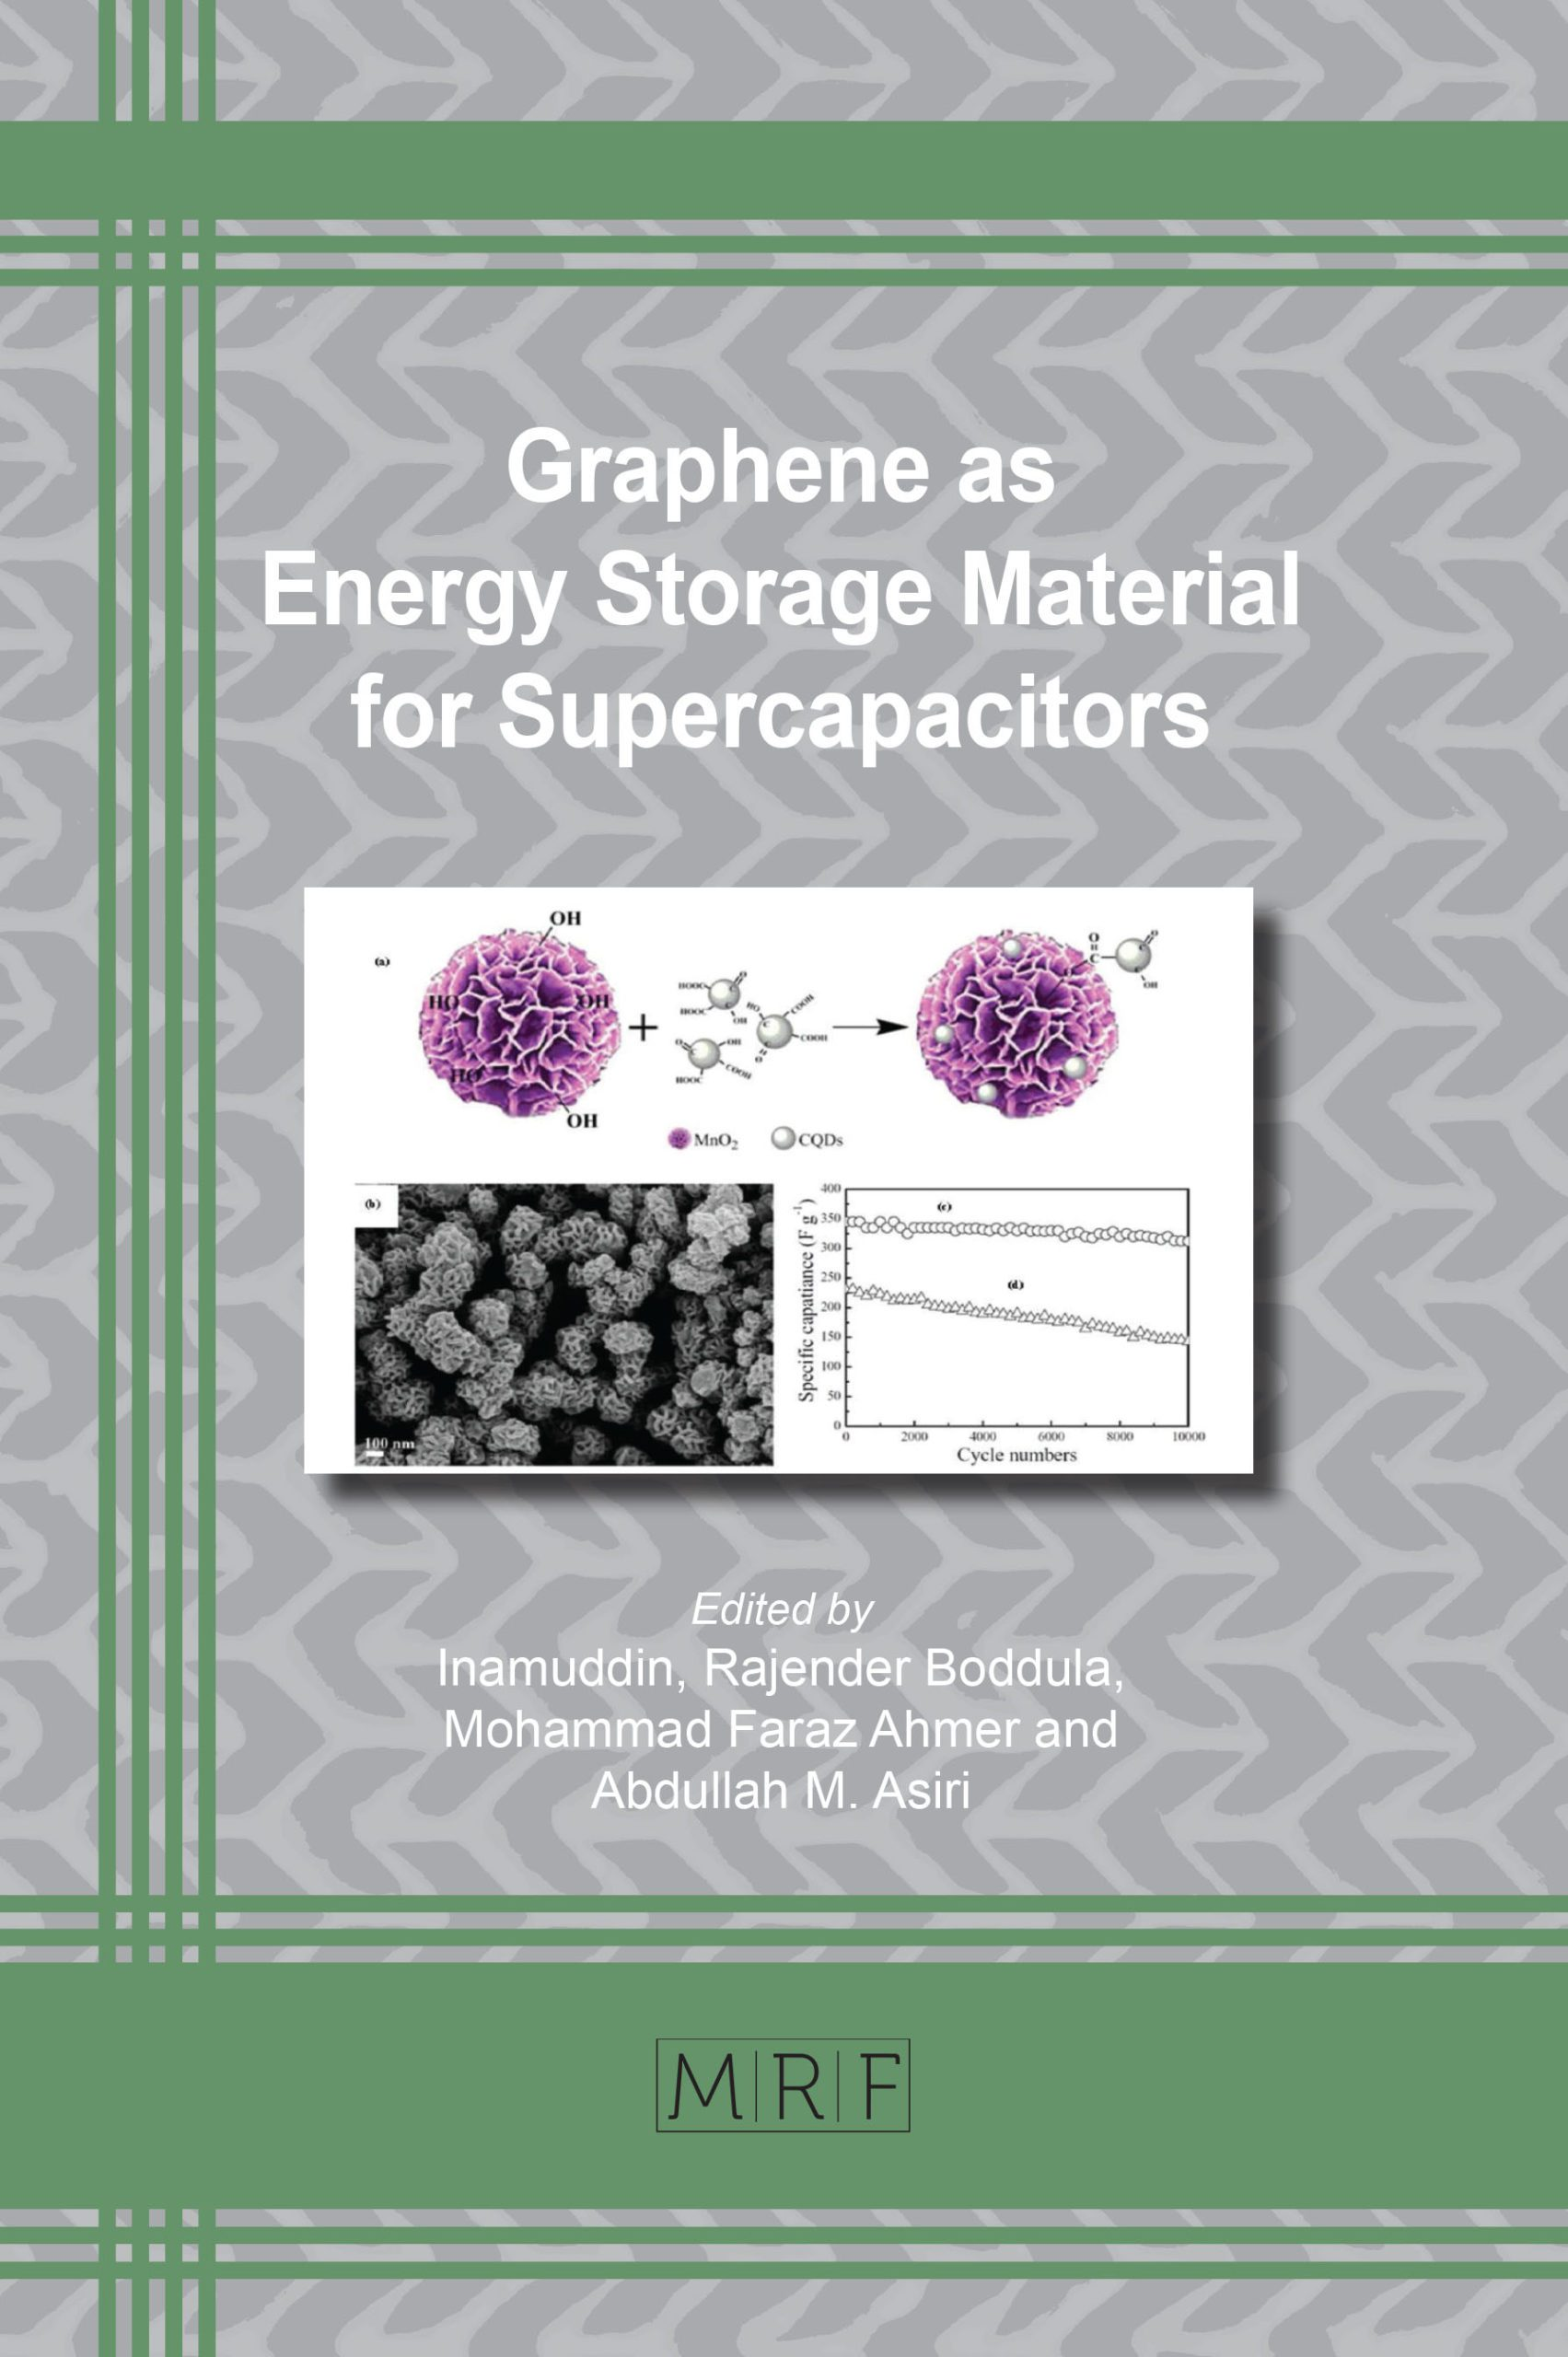 Graphene based Supercapacitors